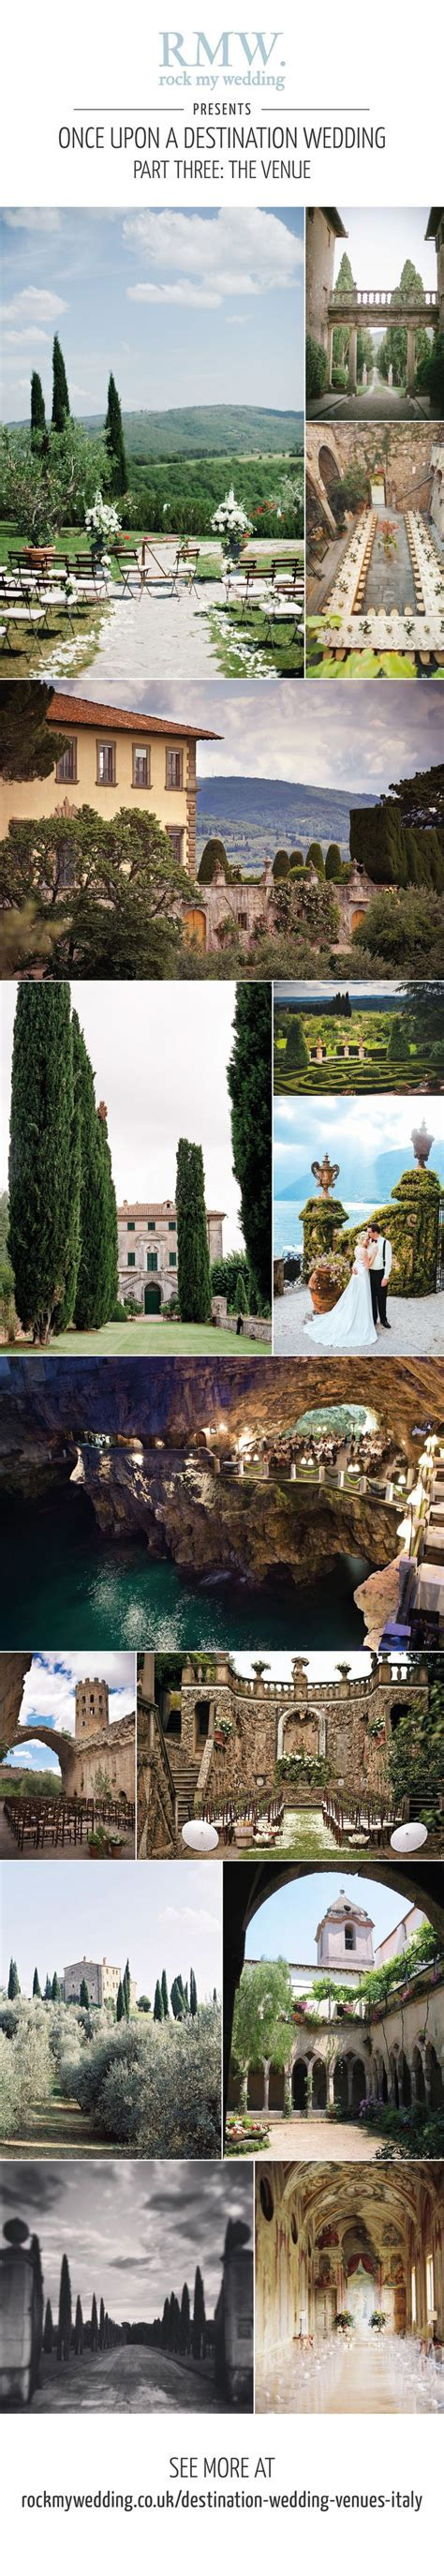 Best 25  Italy wedding ideas on Pinterest   Italian